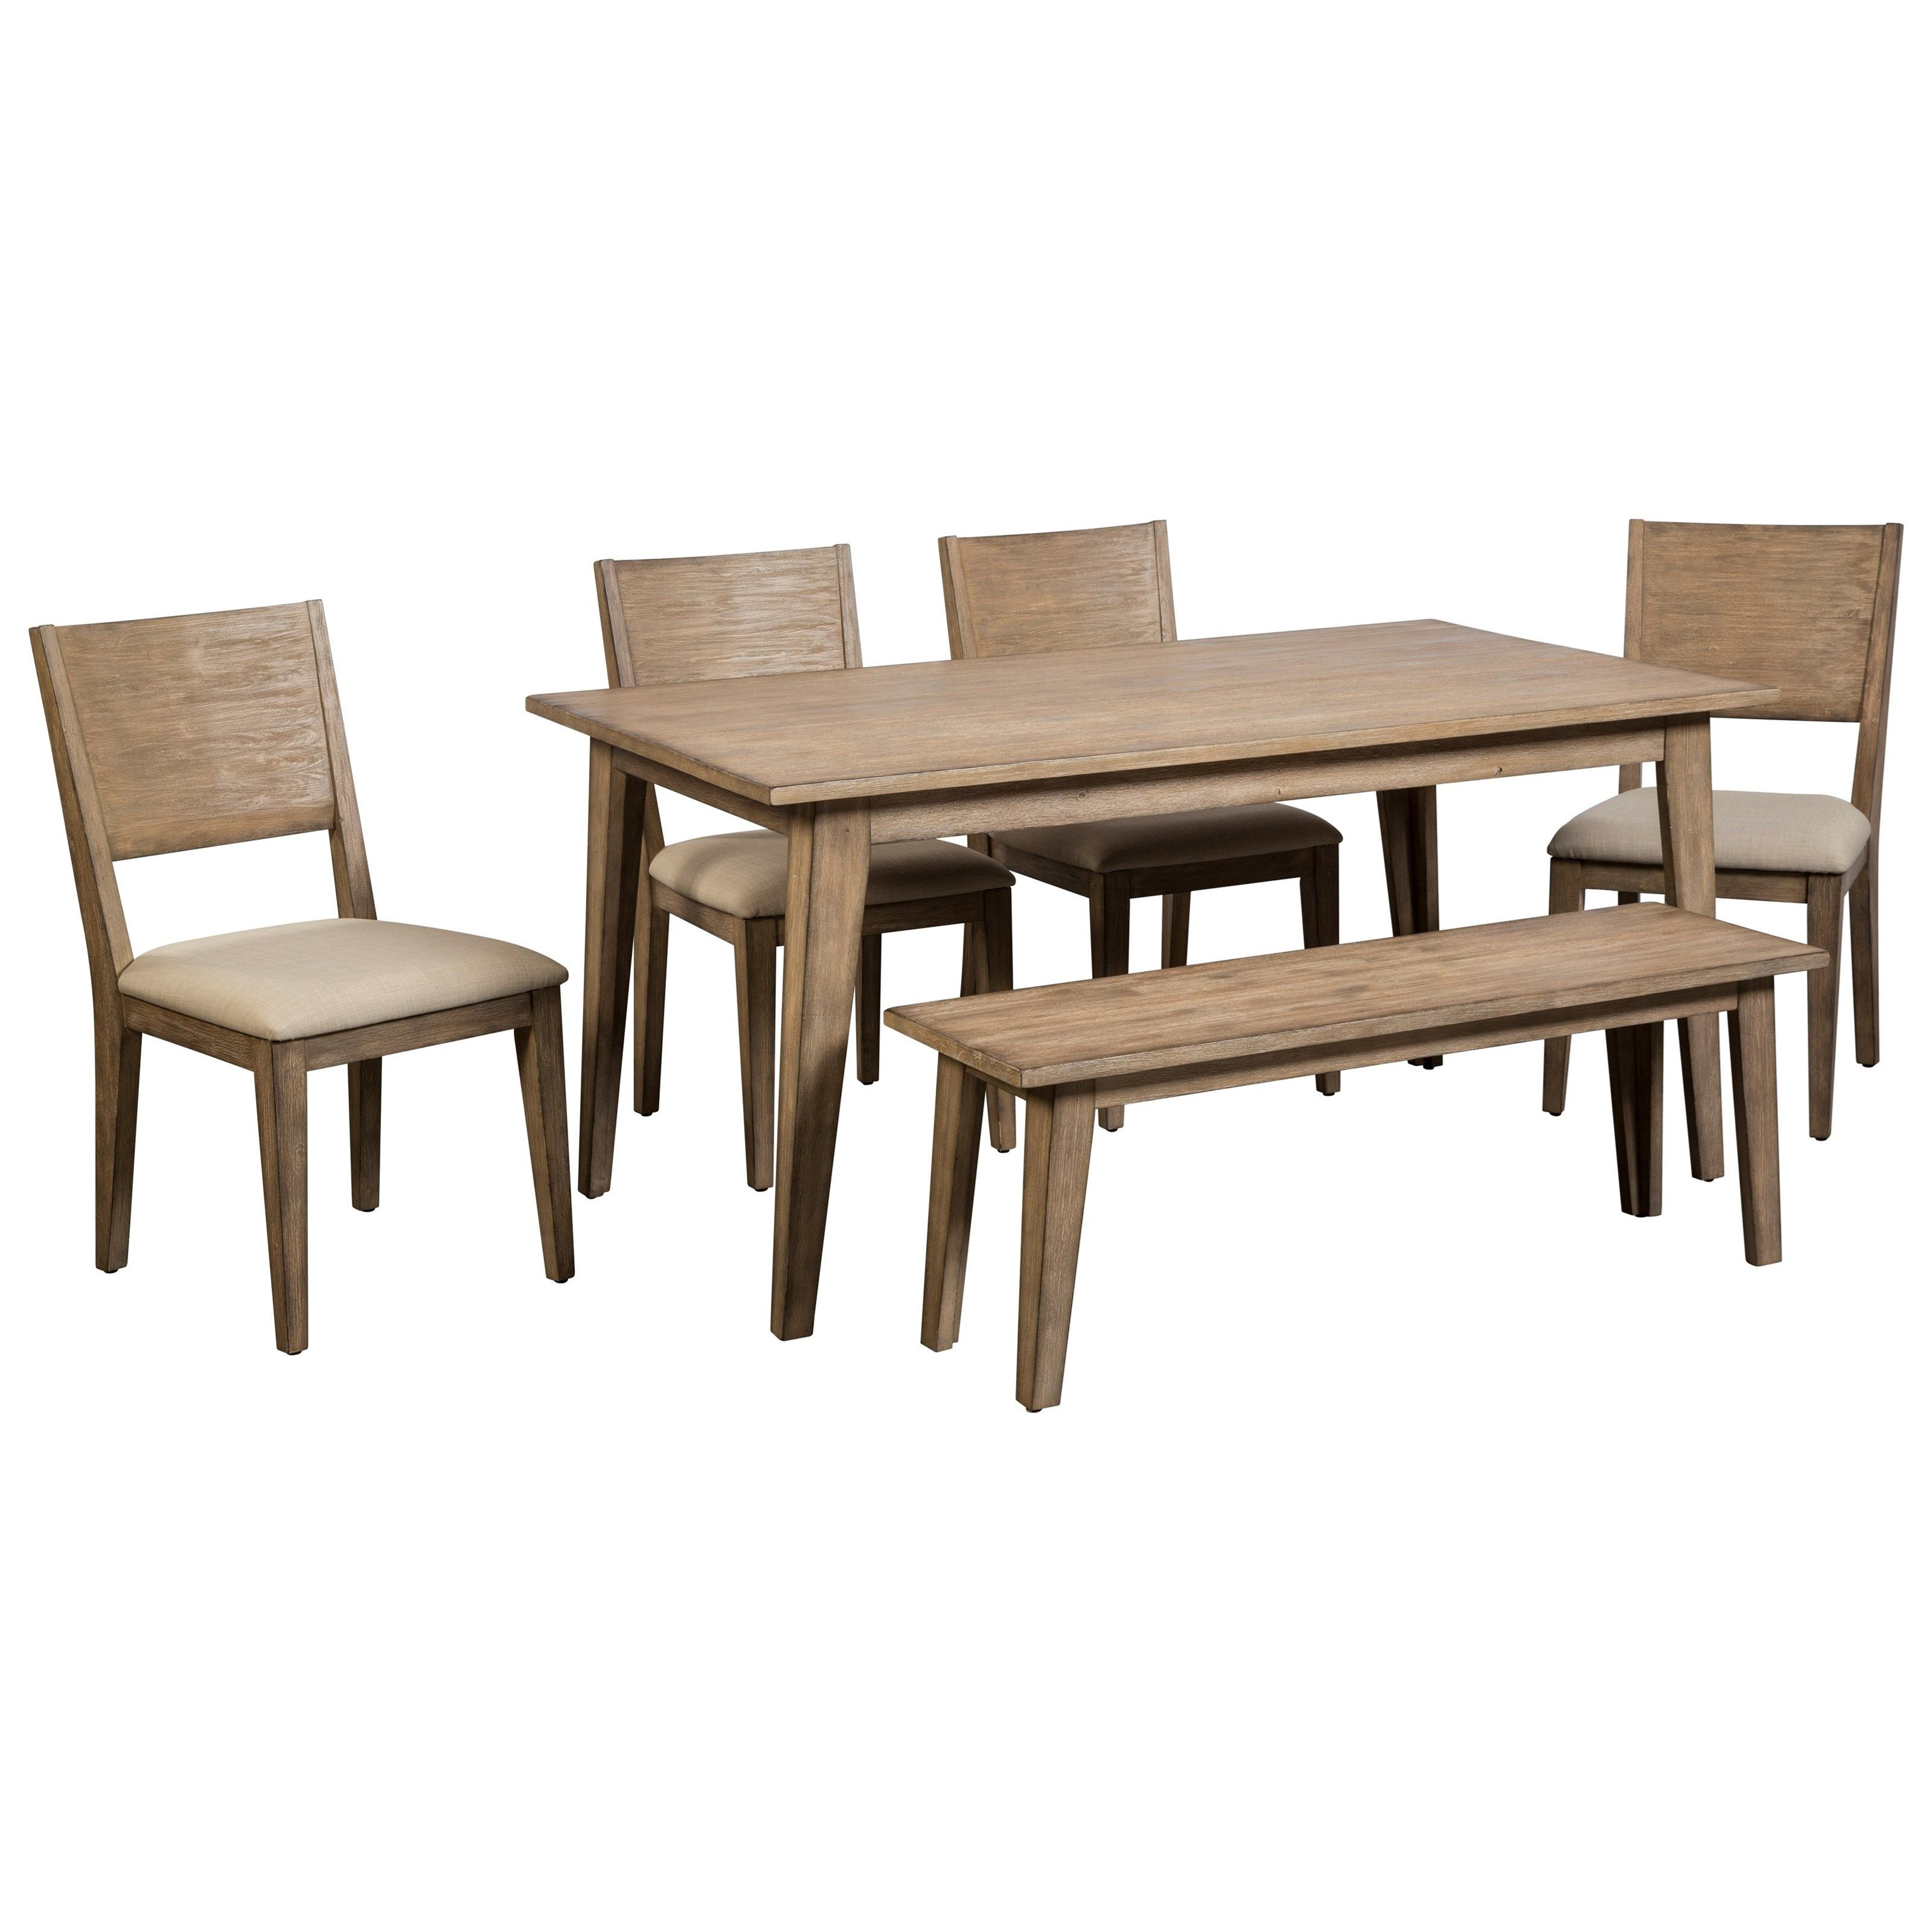 Anders 6 Piece Table And Chair Set With Bench By Cresent Fine Furniture At Belfort Furniture With Images Side Chairs Dining Dining Room Table Set Solid Wood Table